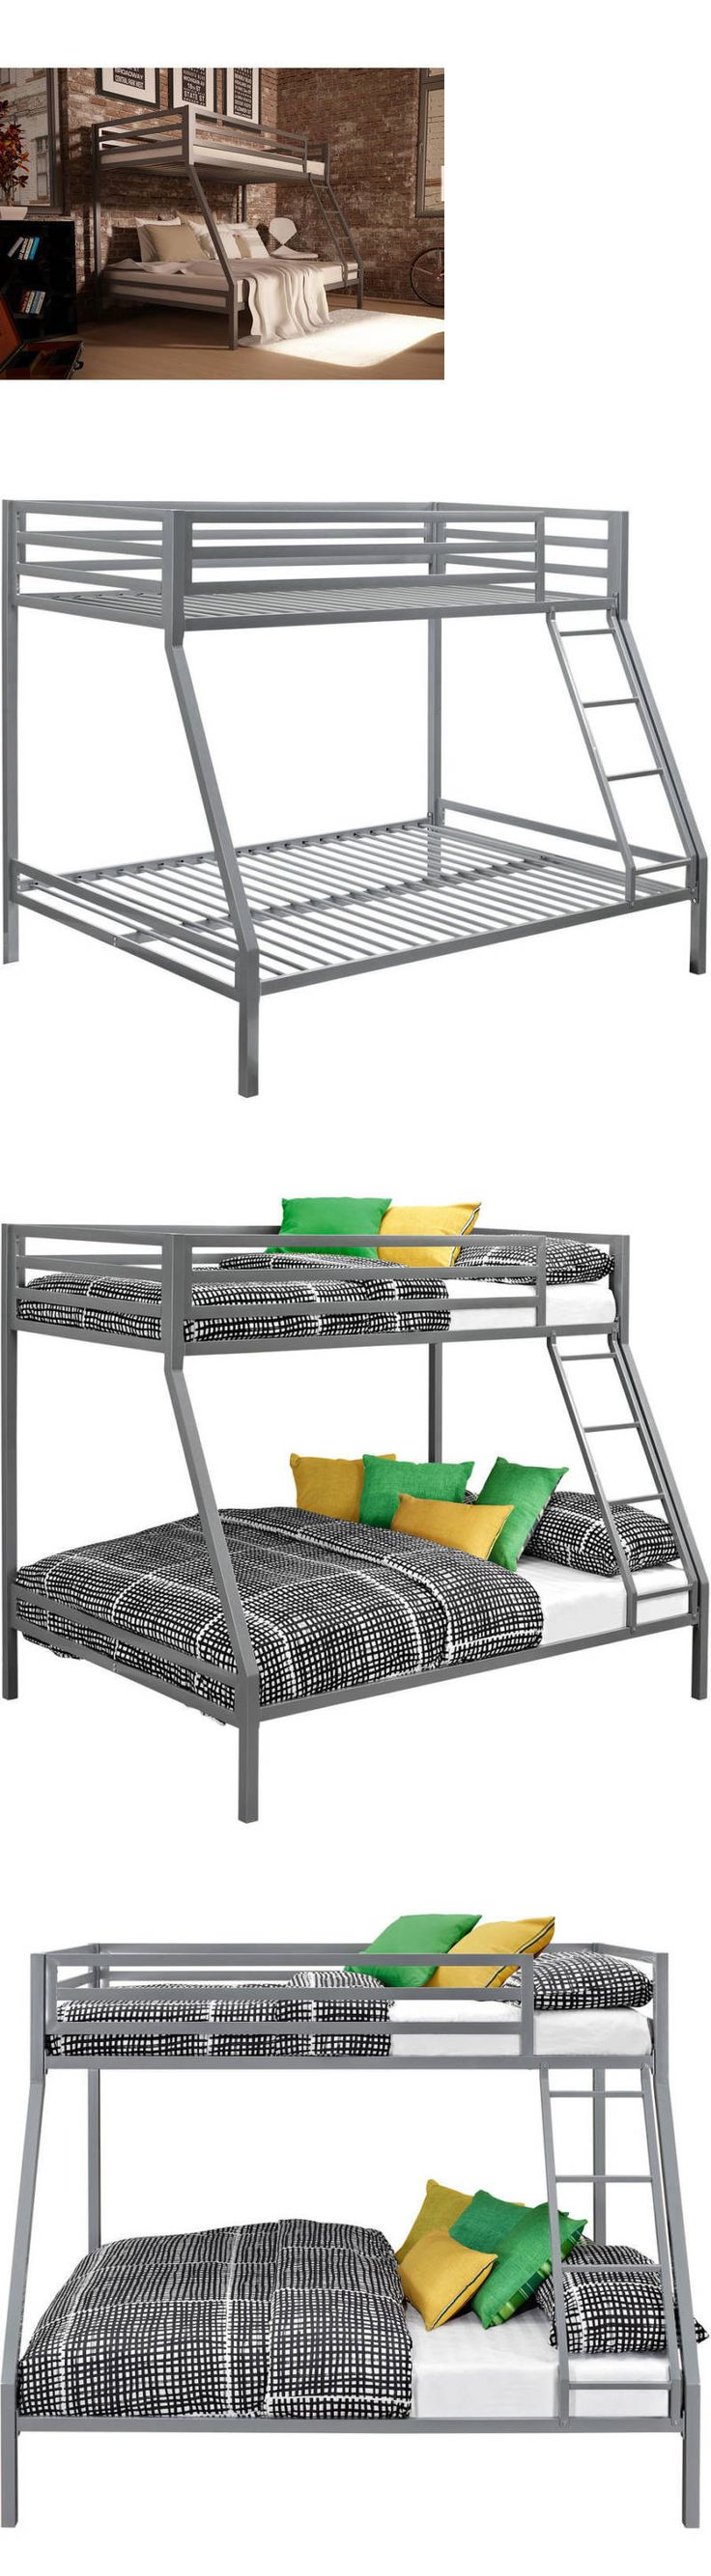 Kids Furniture Twin Over Full Bunk Bed Silver Metal Ladder Kids Bedroom Furniture Beds Frame